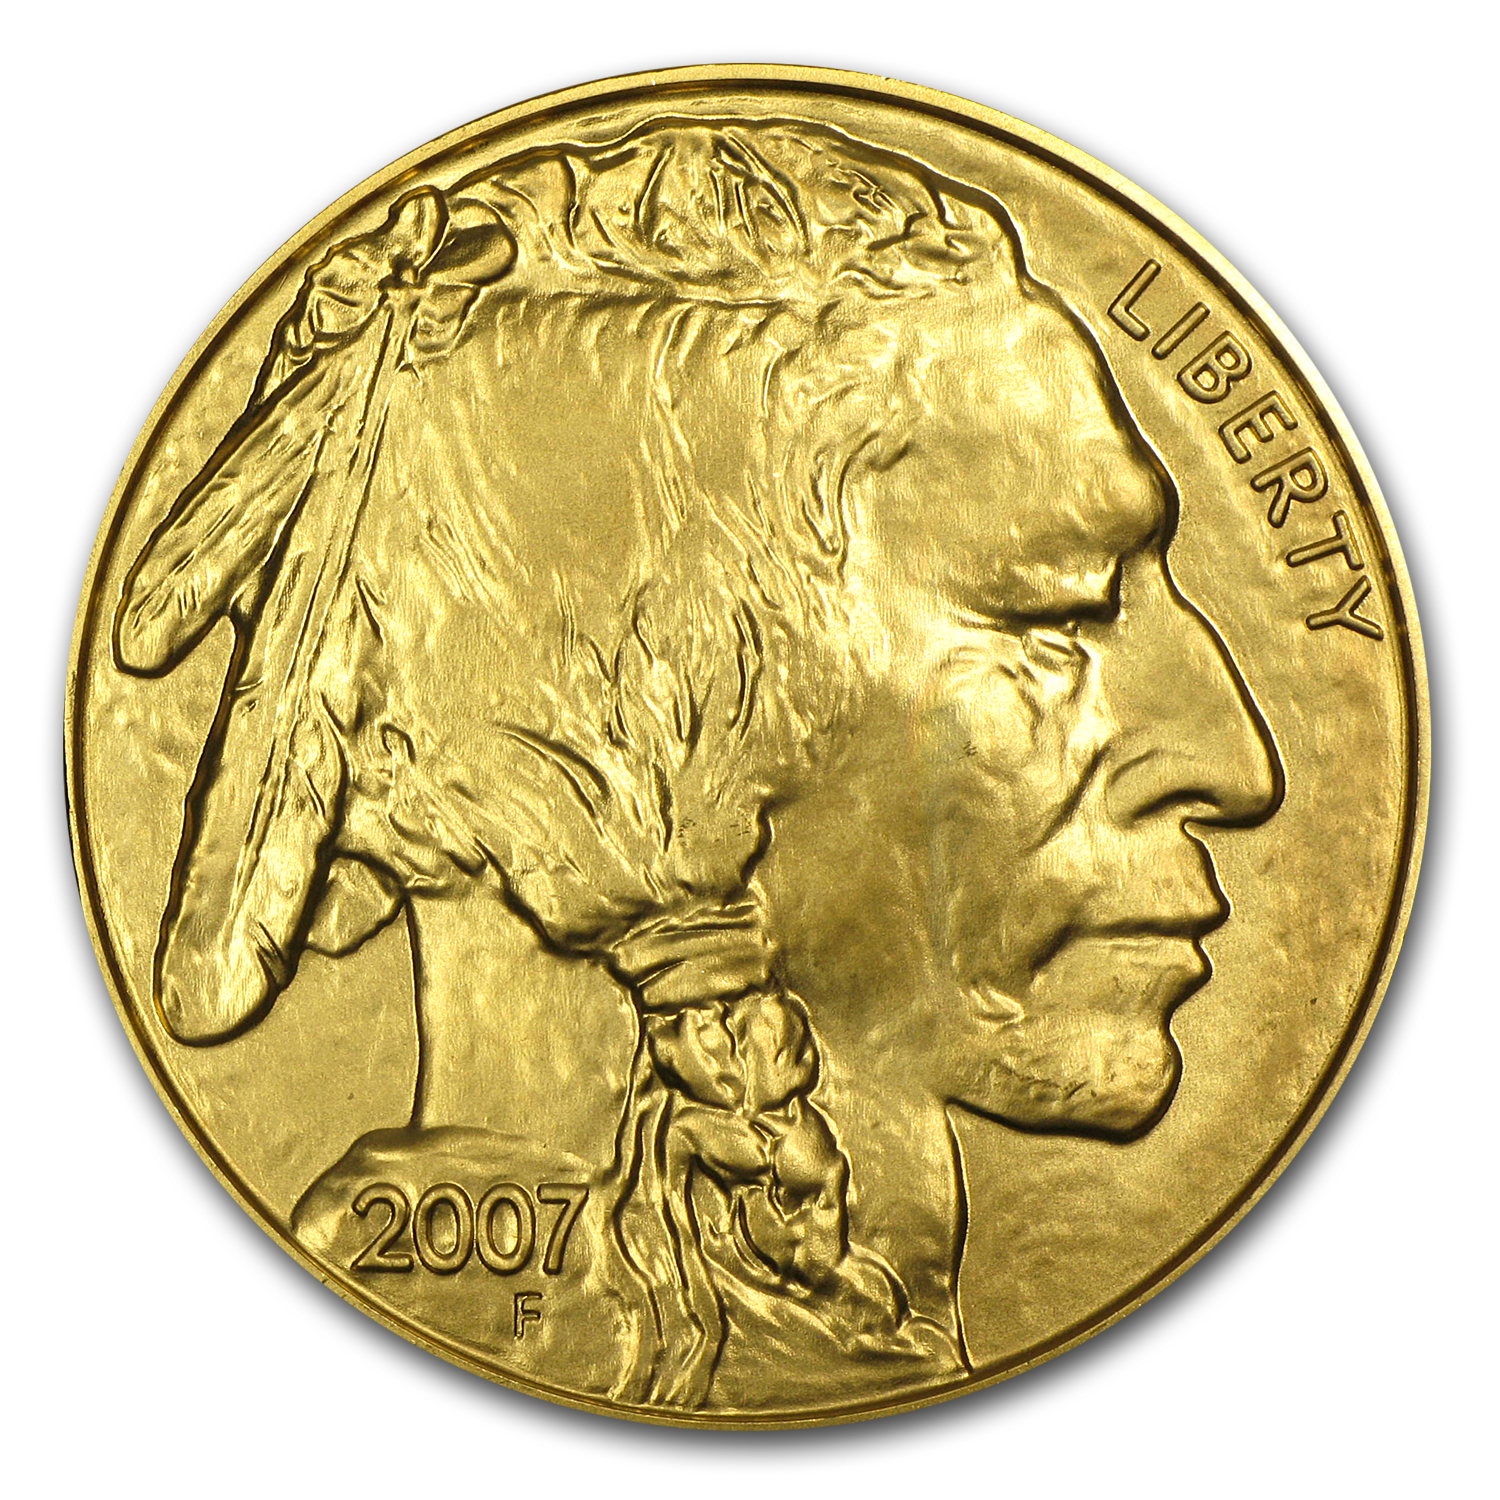 2007 1 oz Gold Buffalo BU